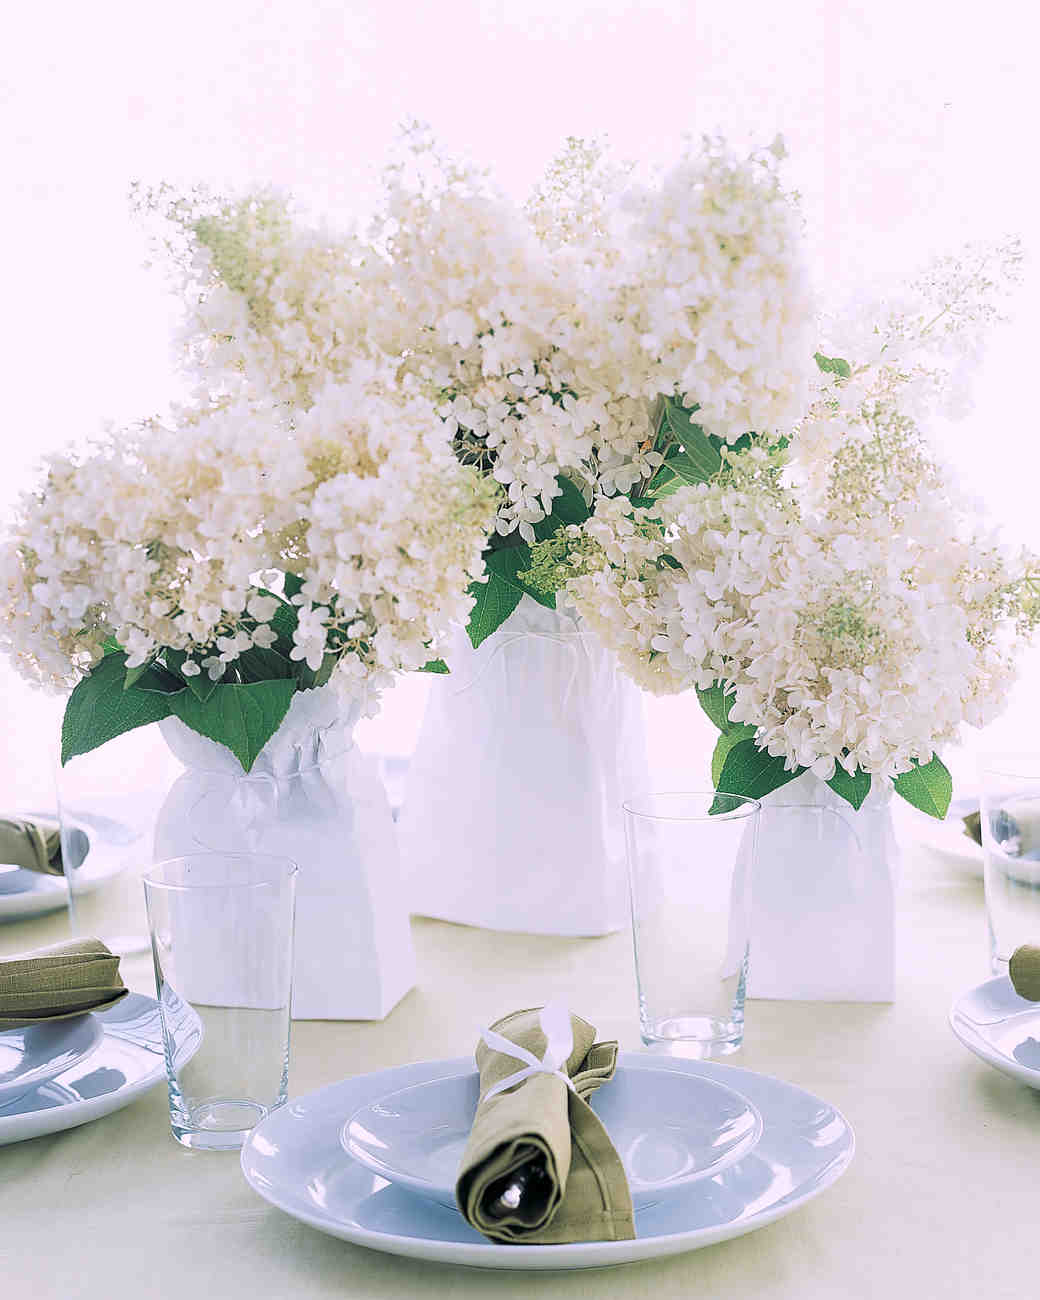 Wedding Centerpieces: Affordable Wedding Centerpieces That Don't Look Cheap